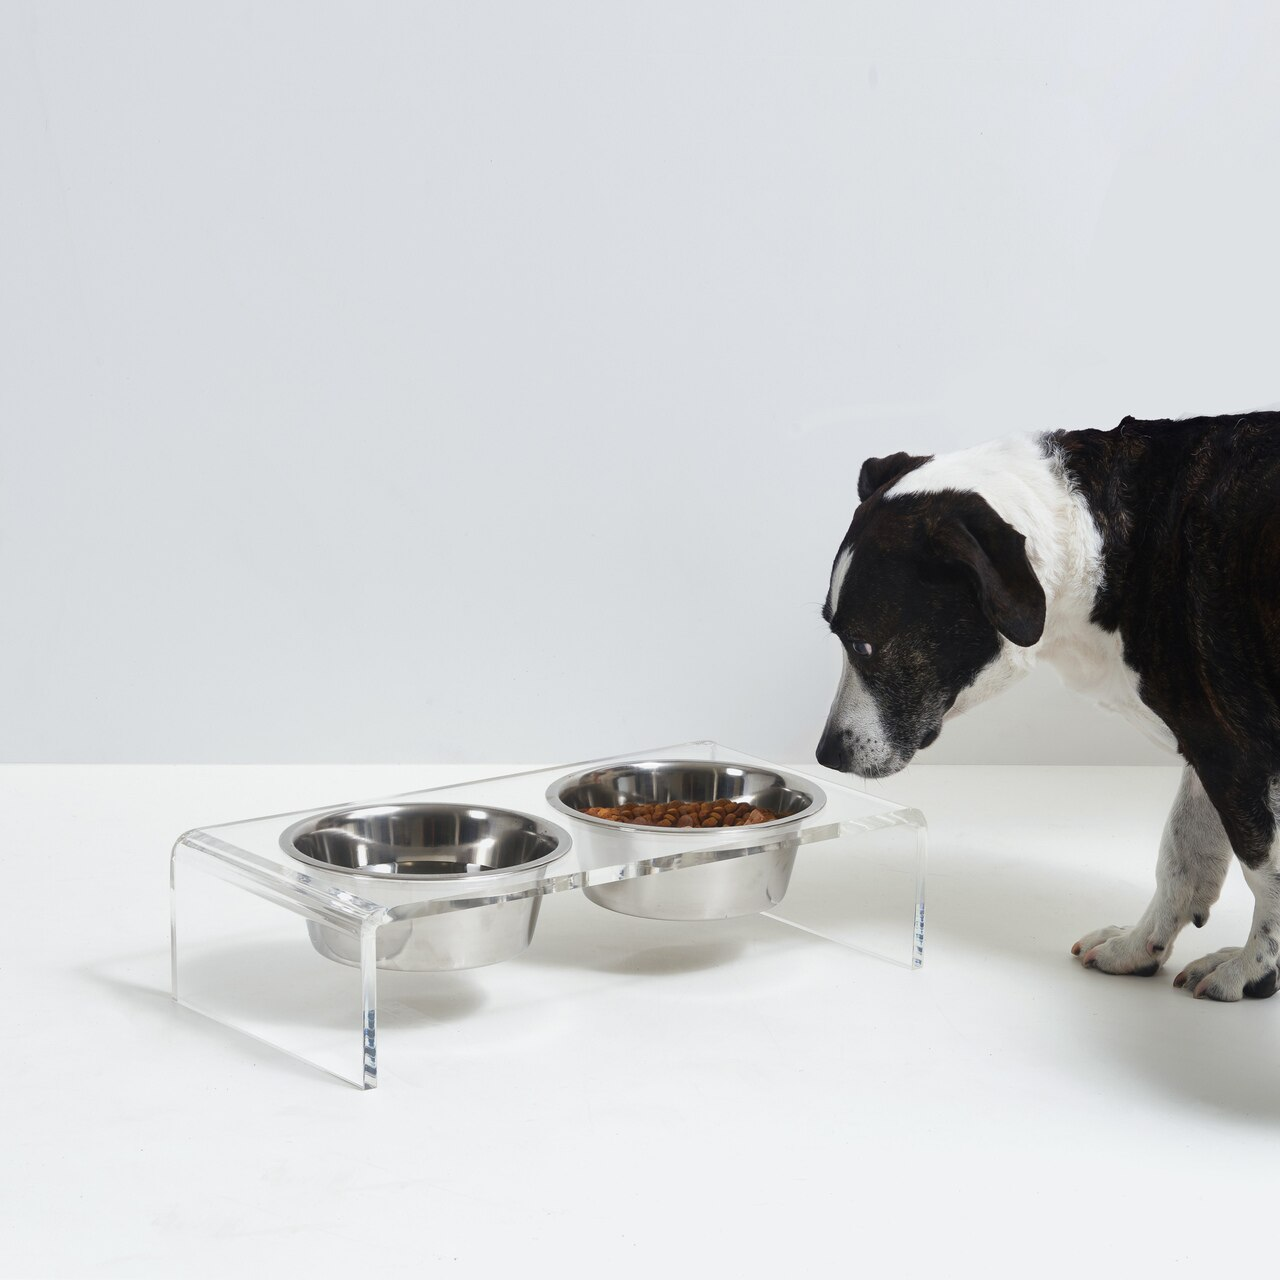 hiddin.co-clear-acrylic-lucite-double-dog-bowl-modern-feeder-bowls-elevated.jpg